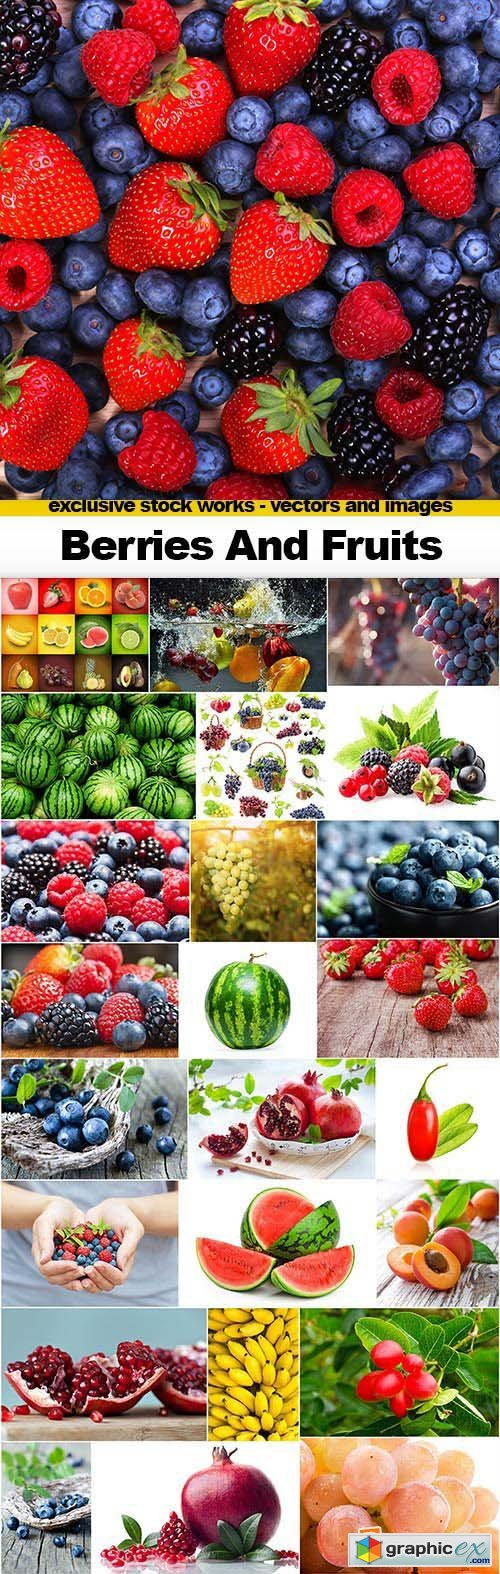 Berries and Fruits - 25x JPEGs